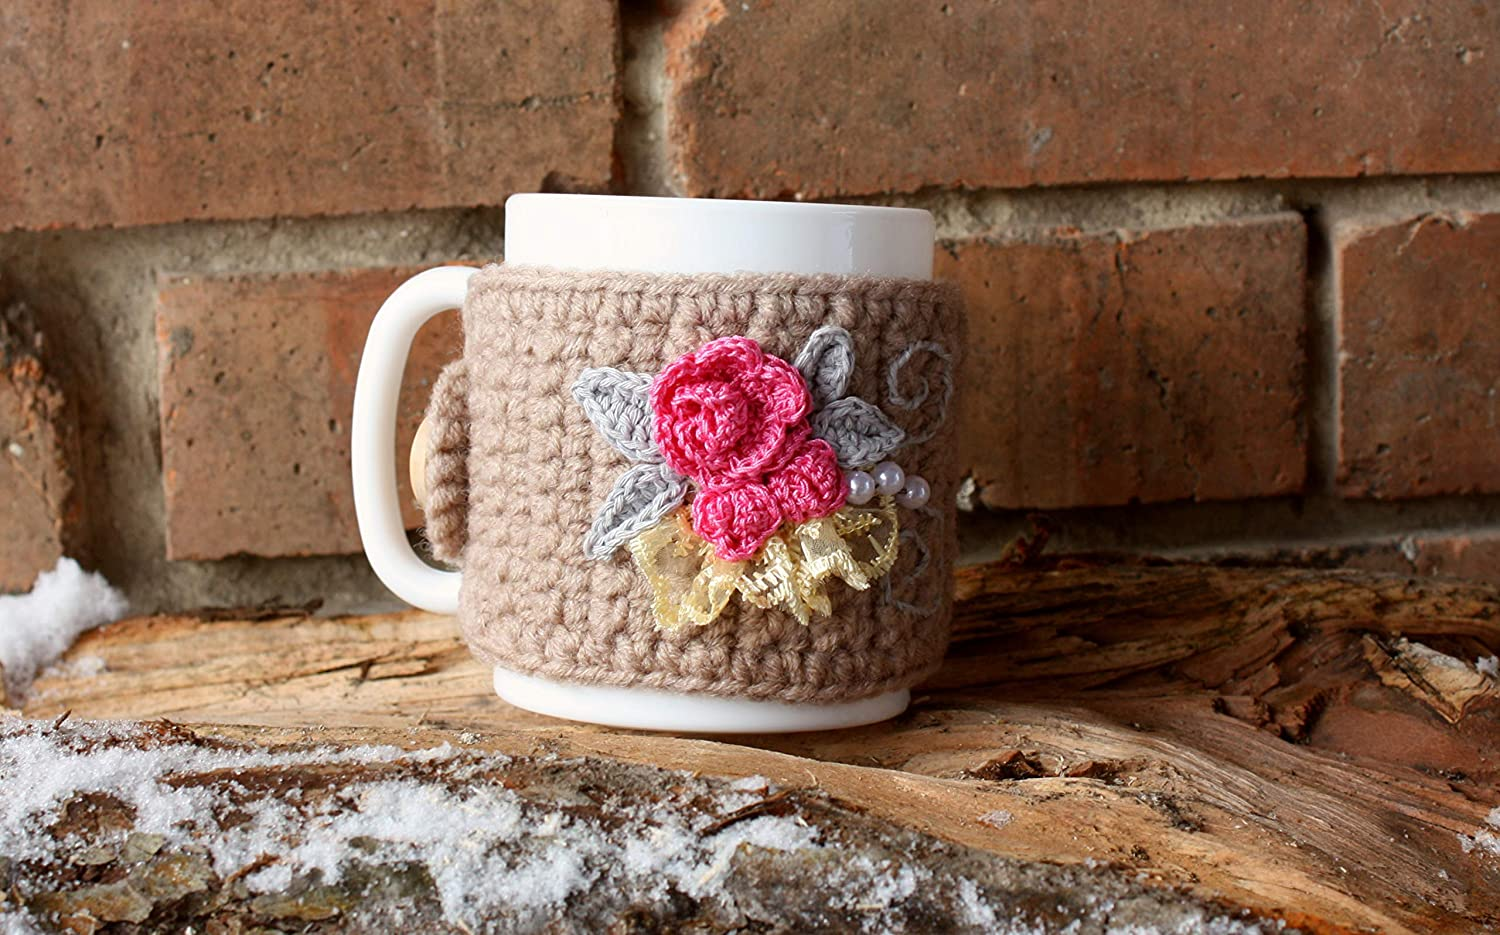 Crochet mug cosy with roses cozy 2021 35% OFF new coffee beige cos